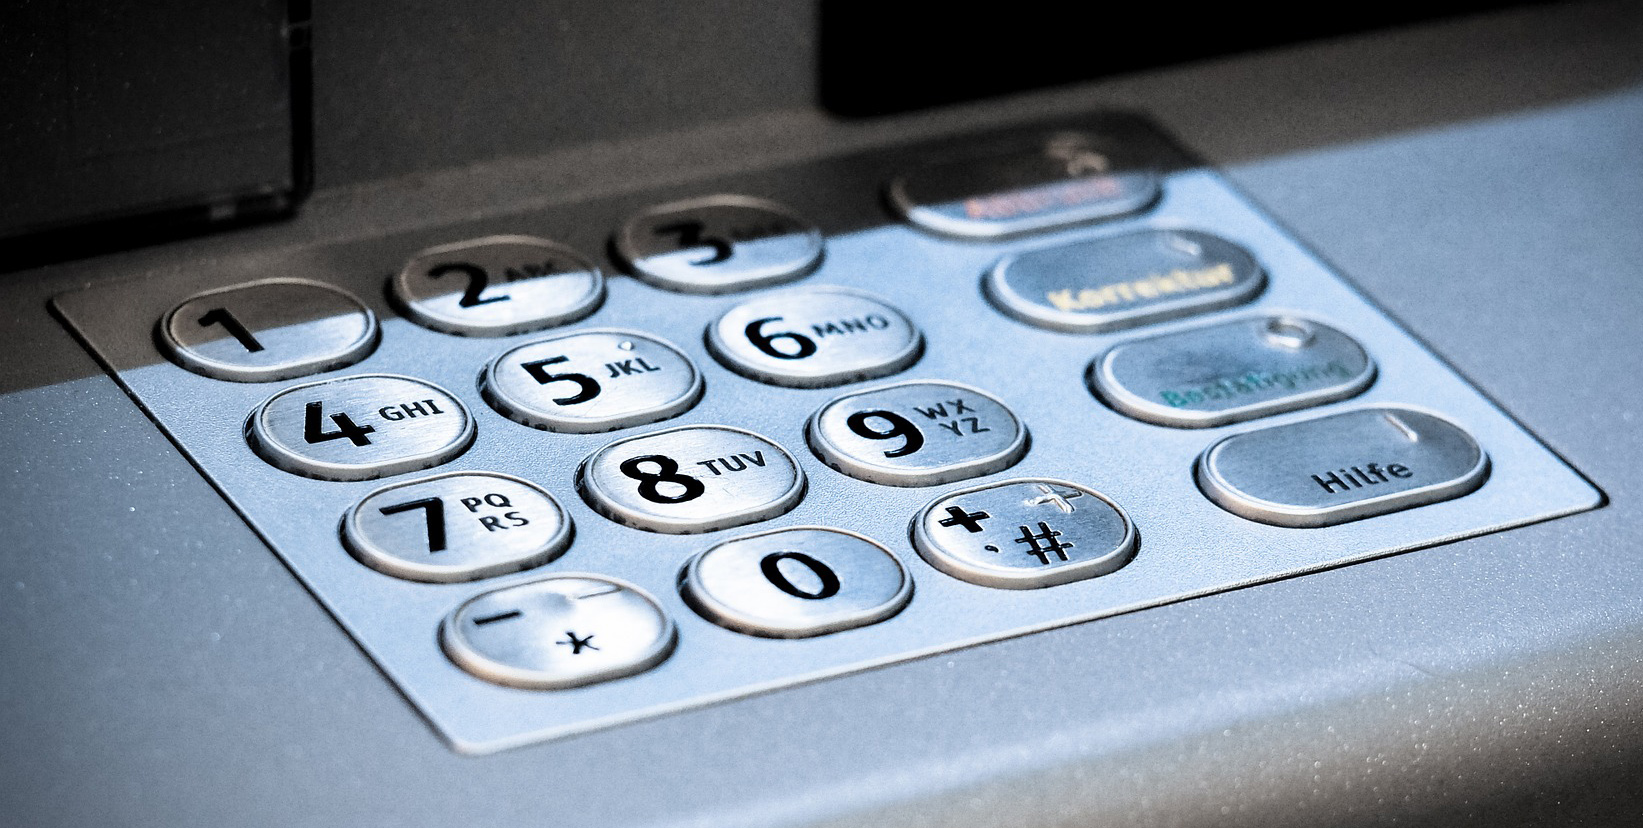 Cobalt hackers executed massive, synchronized ATM heists